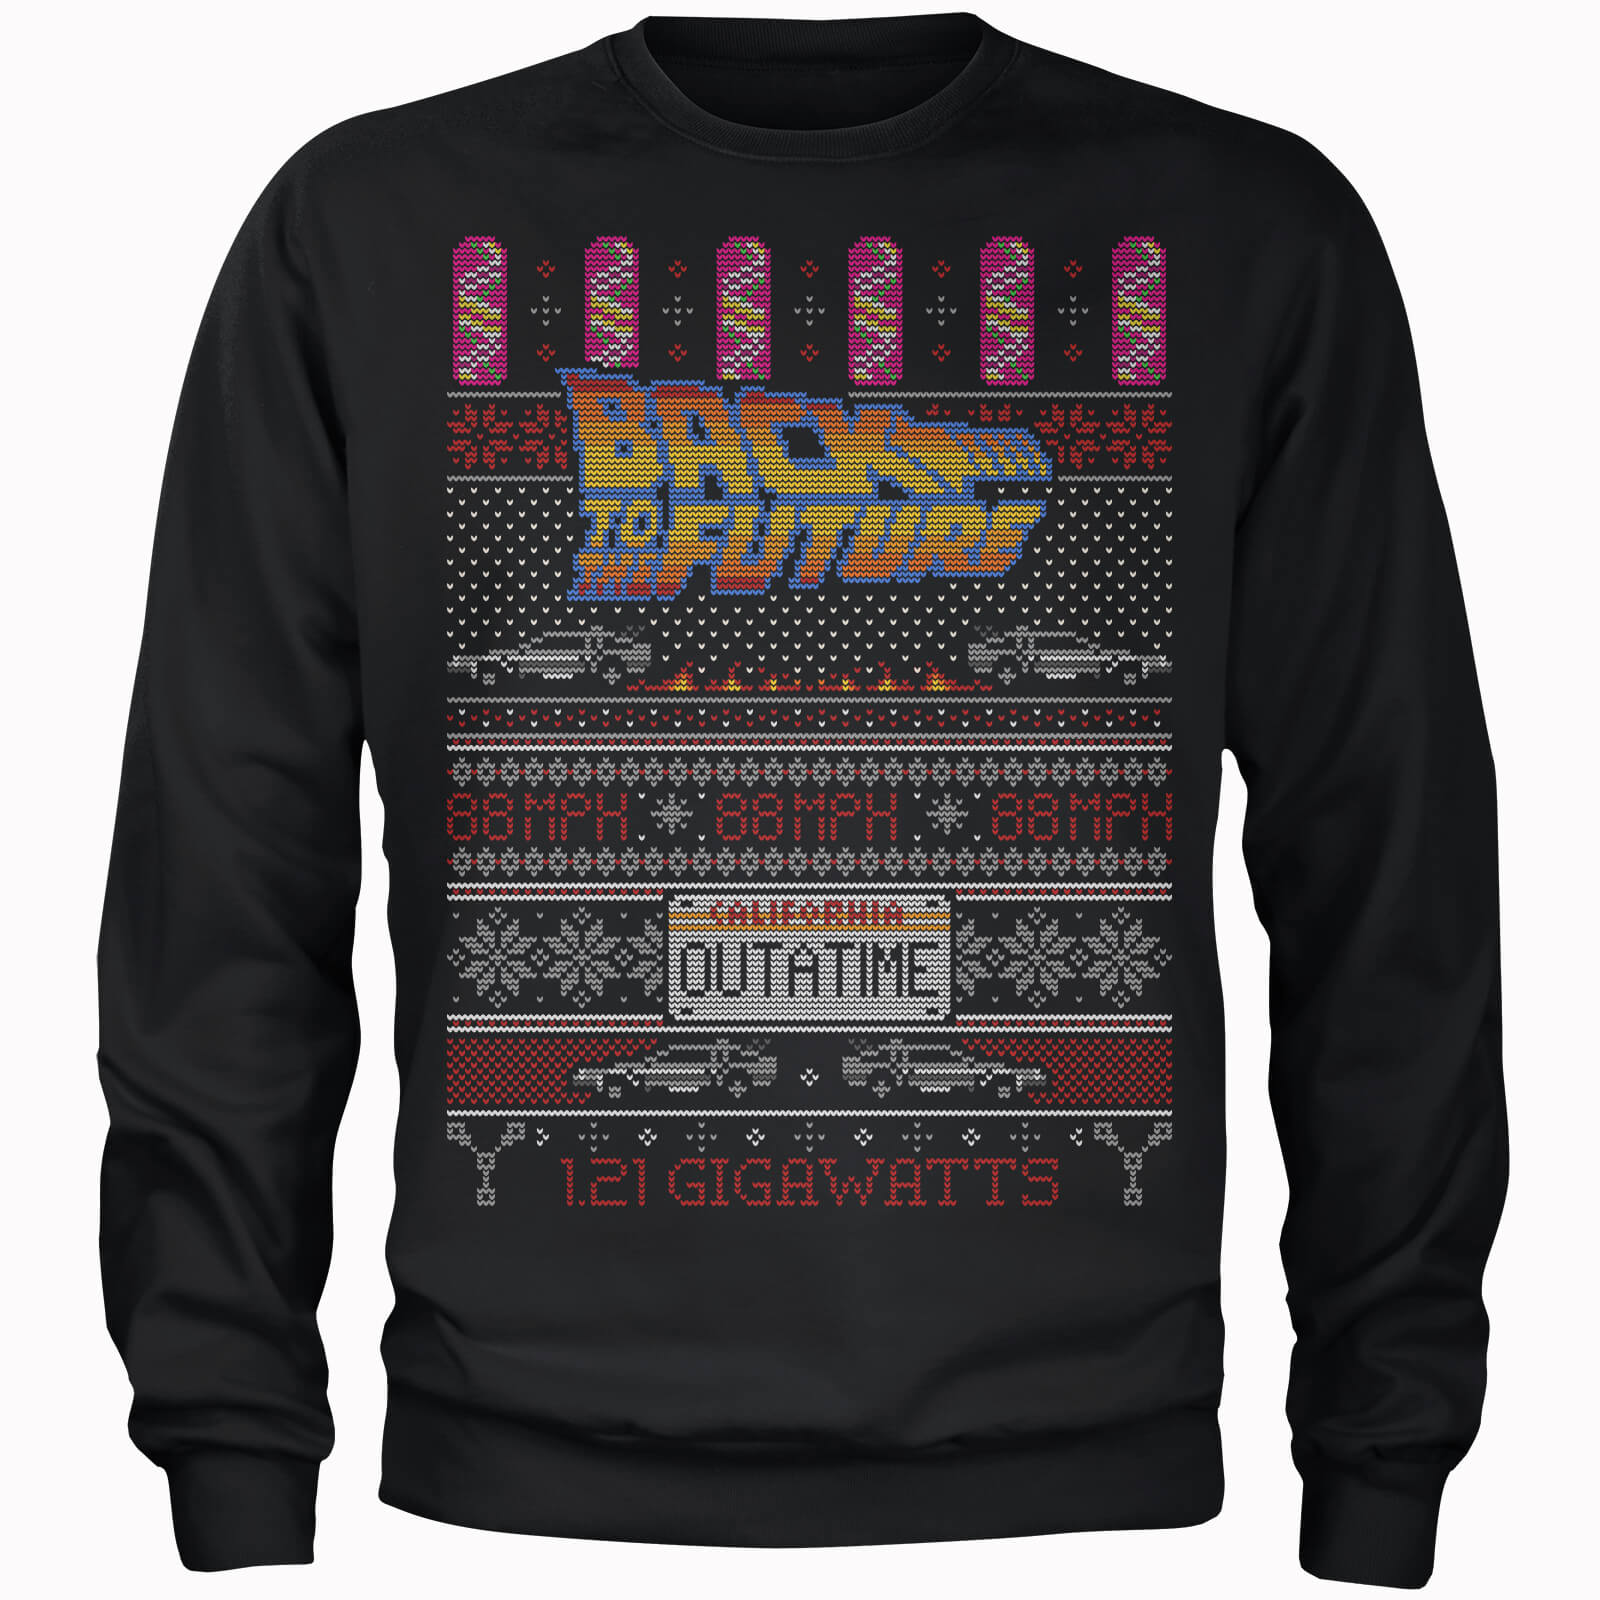 Kersttrui 68.Back To The Future Outatime Men S Christmas Sweatshirt Black